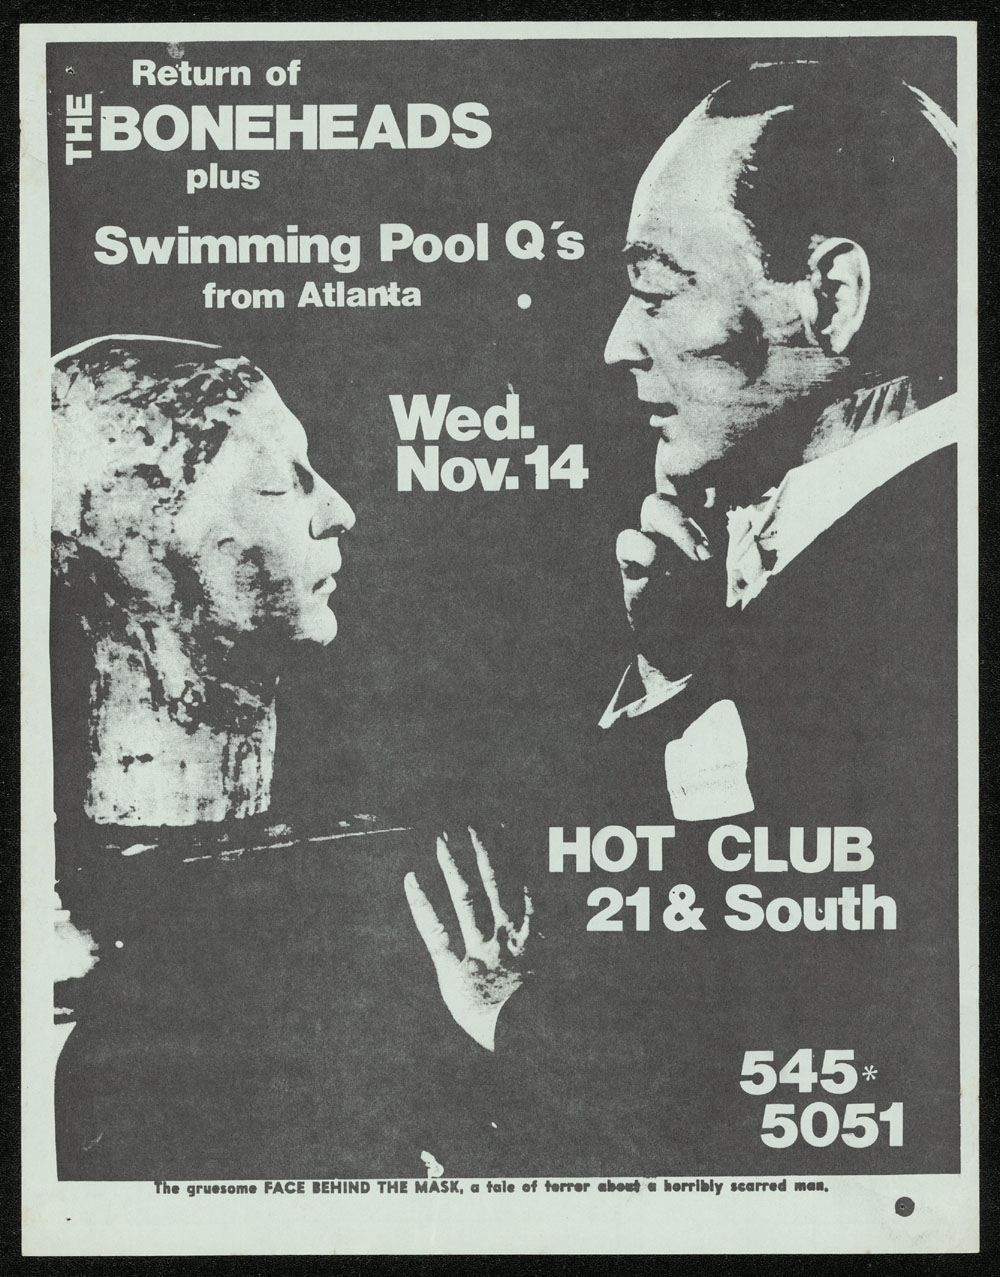 BONEHEADS w/ Swimming Pool Q's at Hot Club